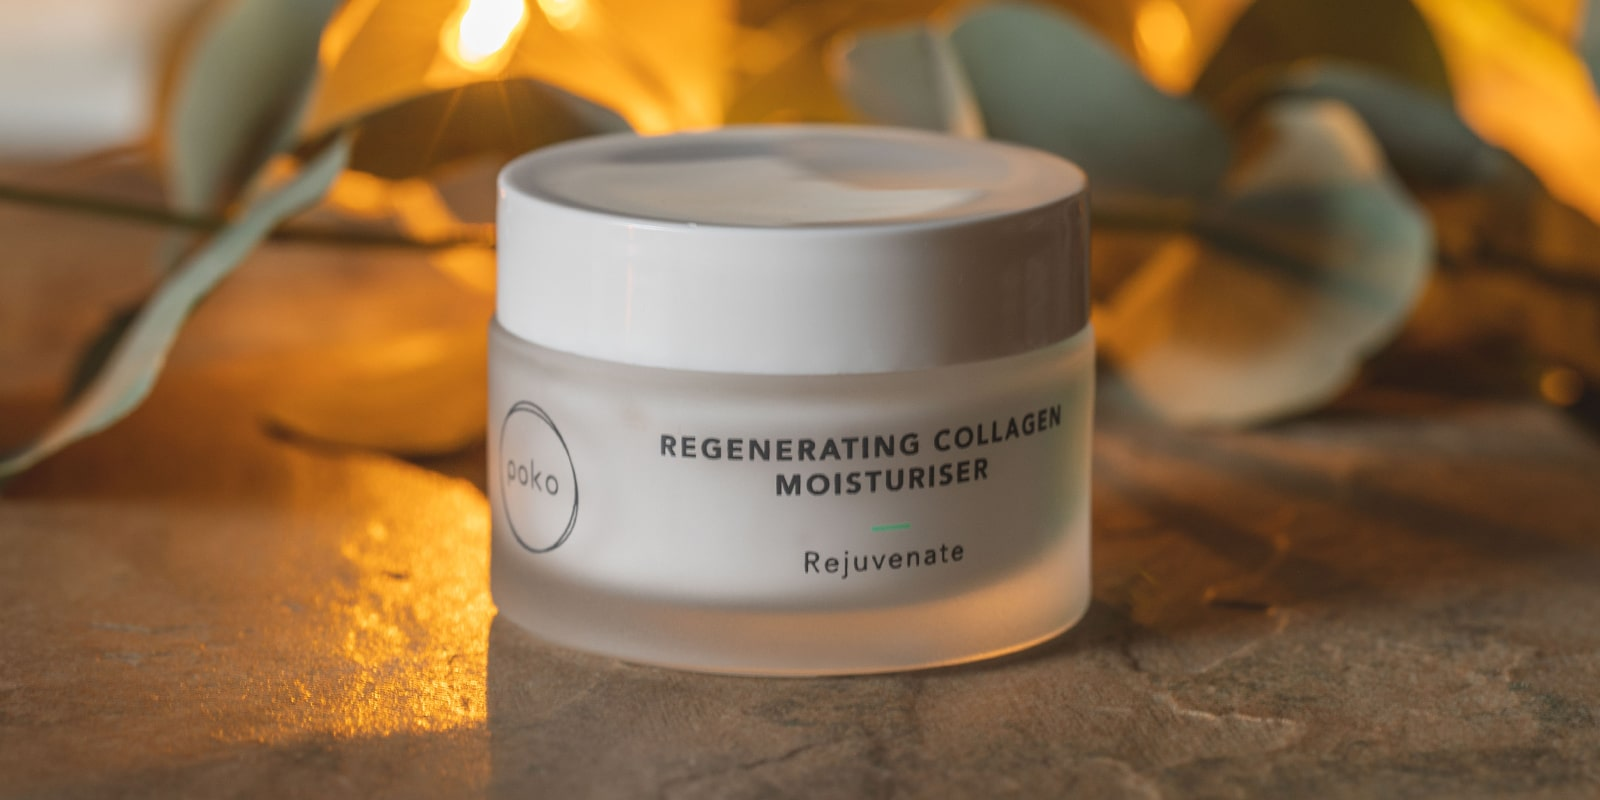 Poko Regenerating Collagen Moisturiser